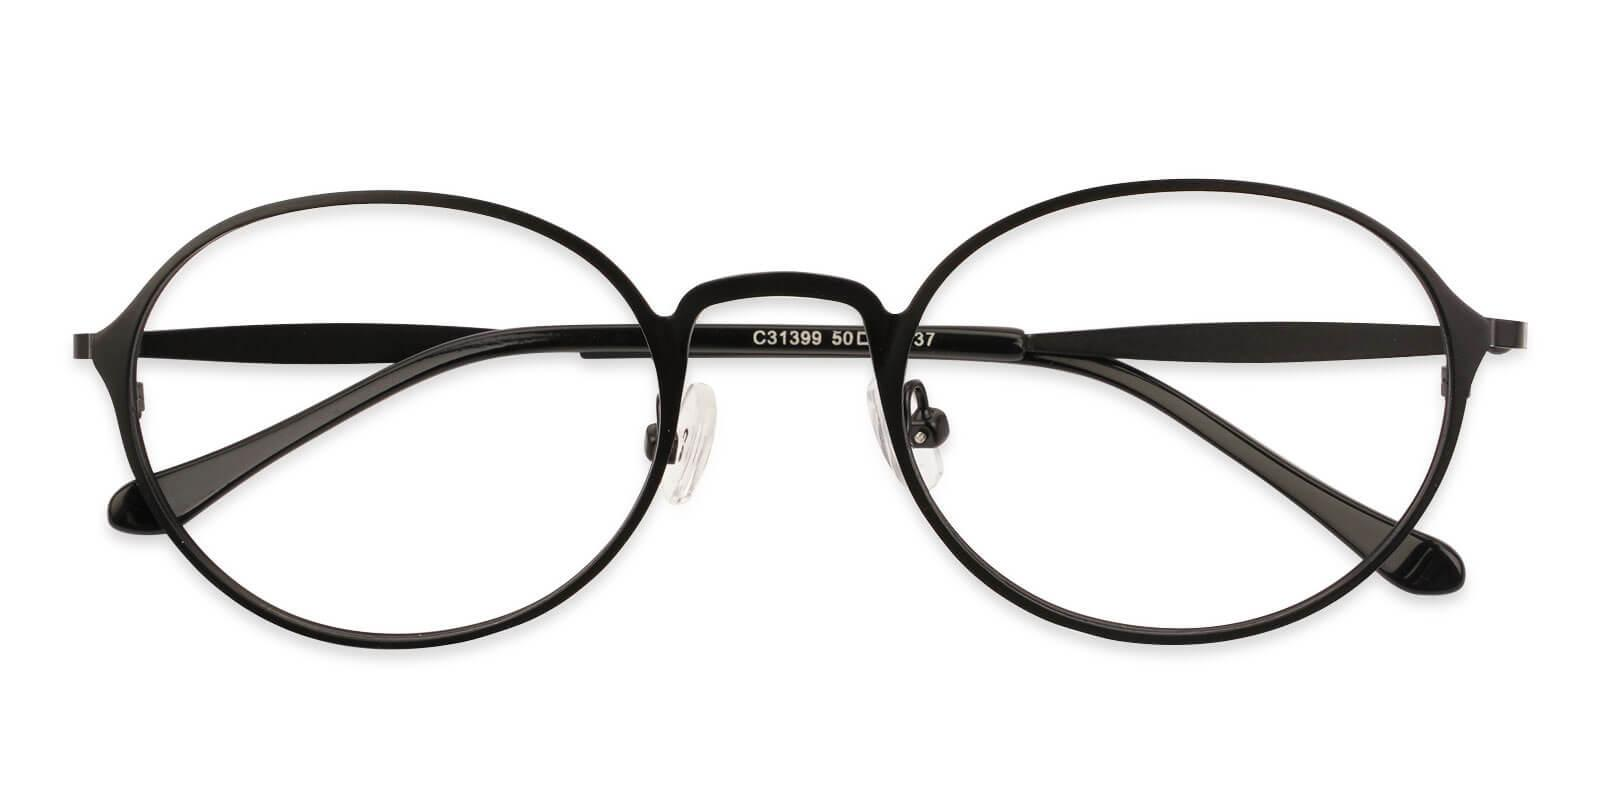 Toughery Black Metal Eyeglasses , NosePads Frames from ABBE Glasses